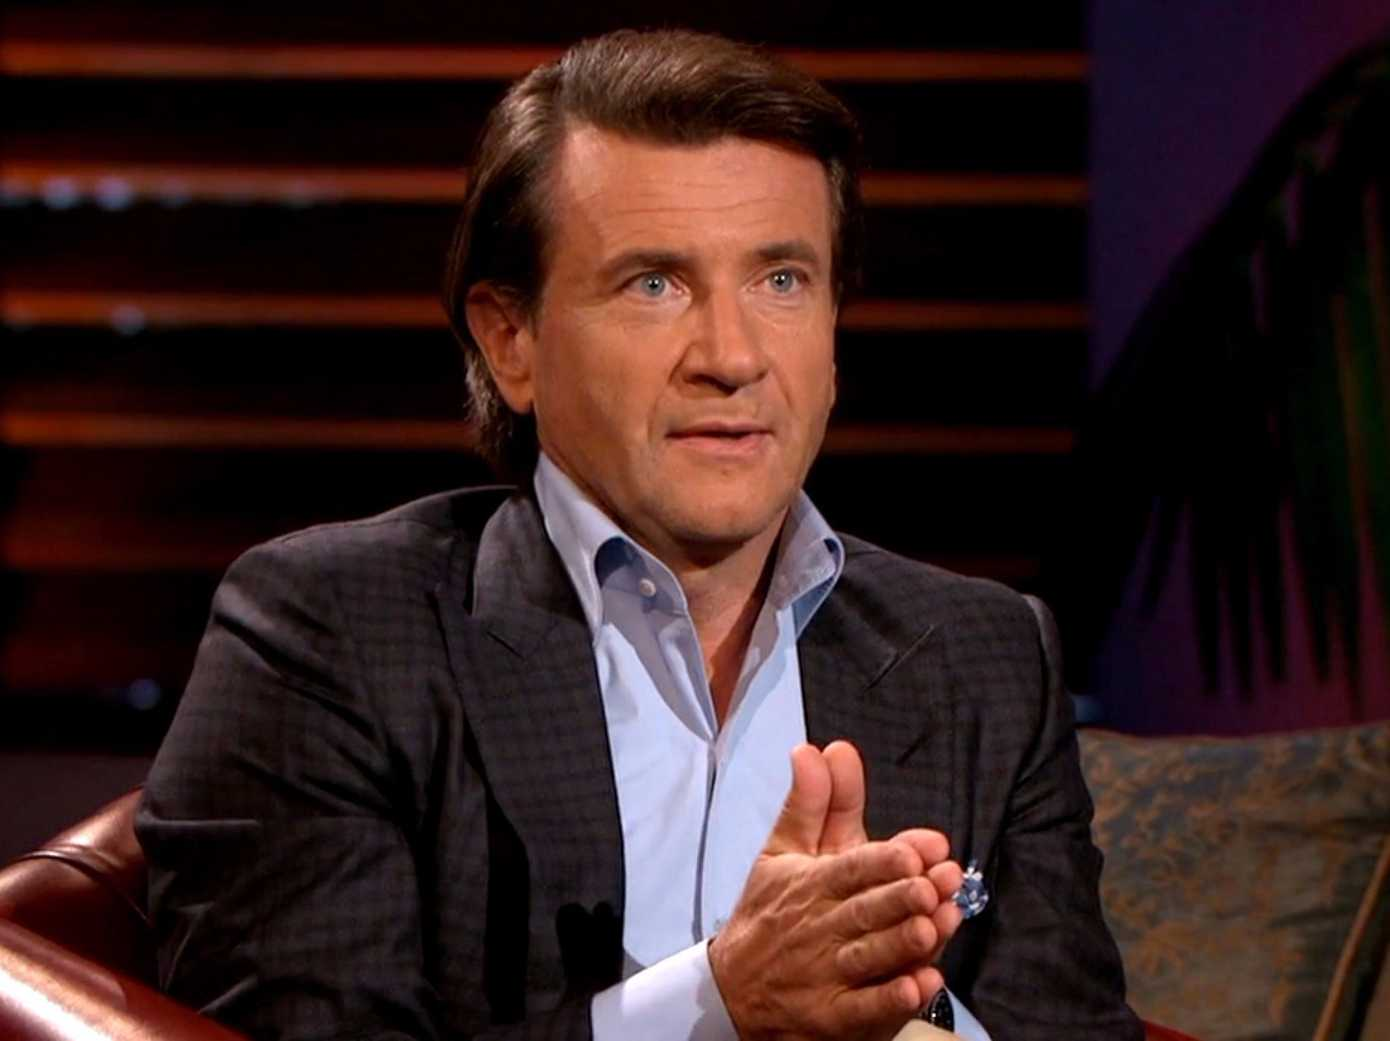 Robert Herjavec holds his hands together and learns forward in his chair on Shark Tank